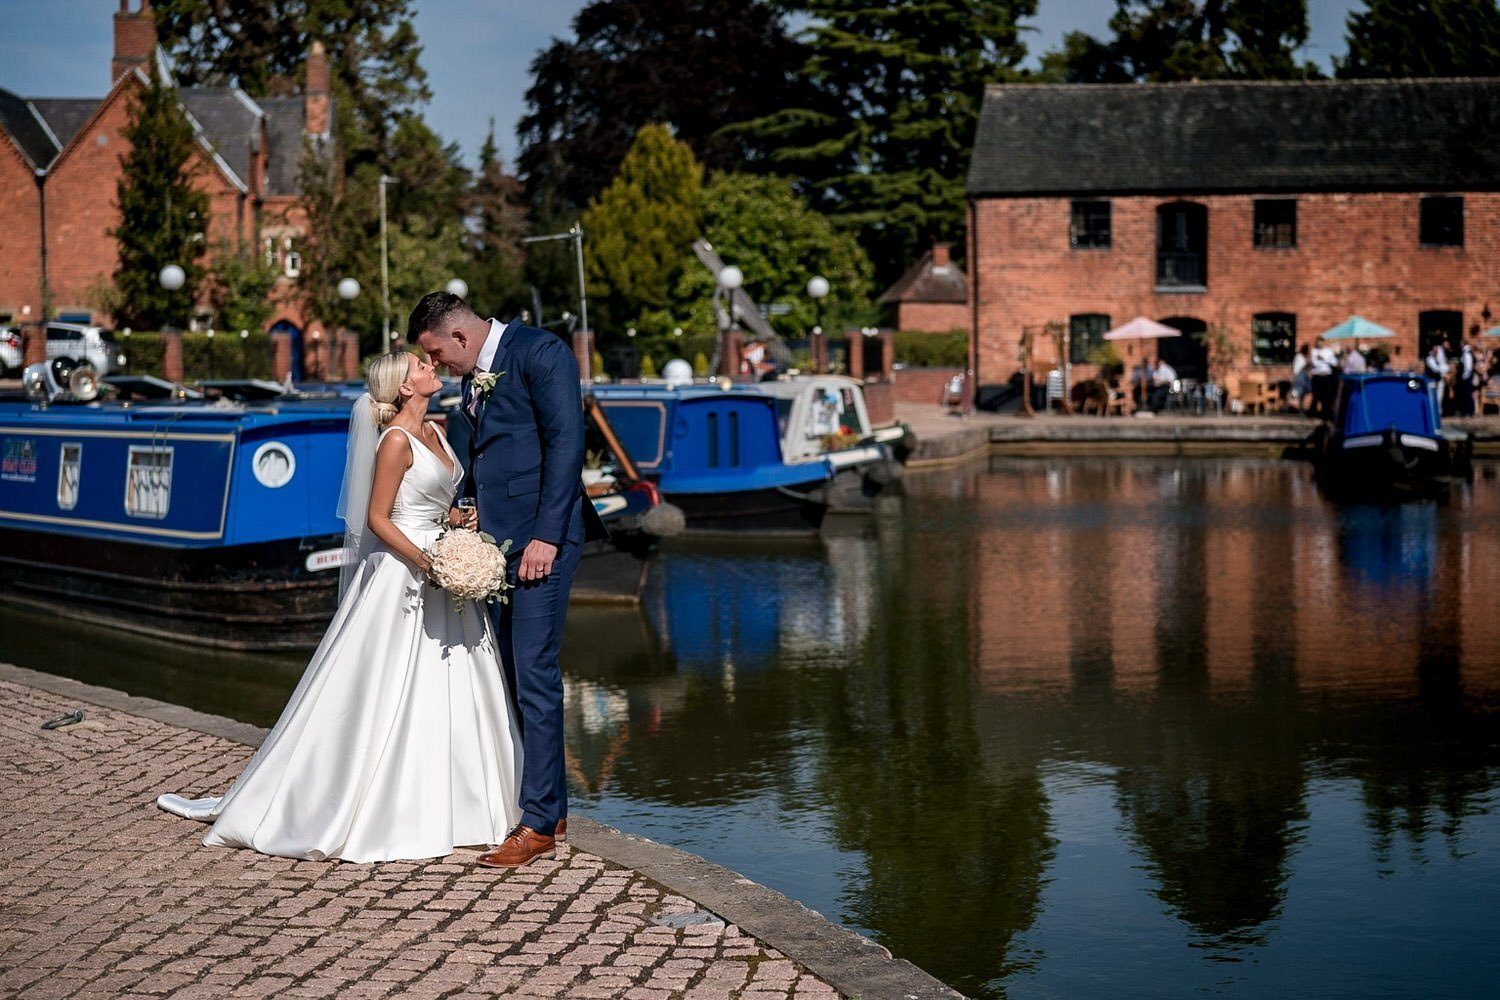 The Waterfront Market Harborough Weddings Photography Bride and Groom on the tow path in front of the barges with the venue in the background